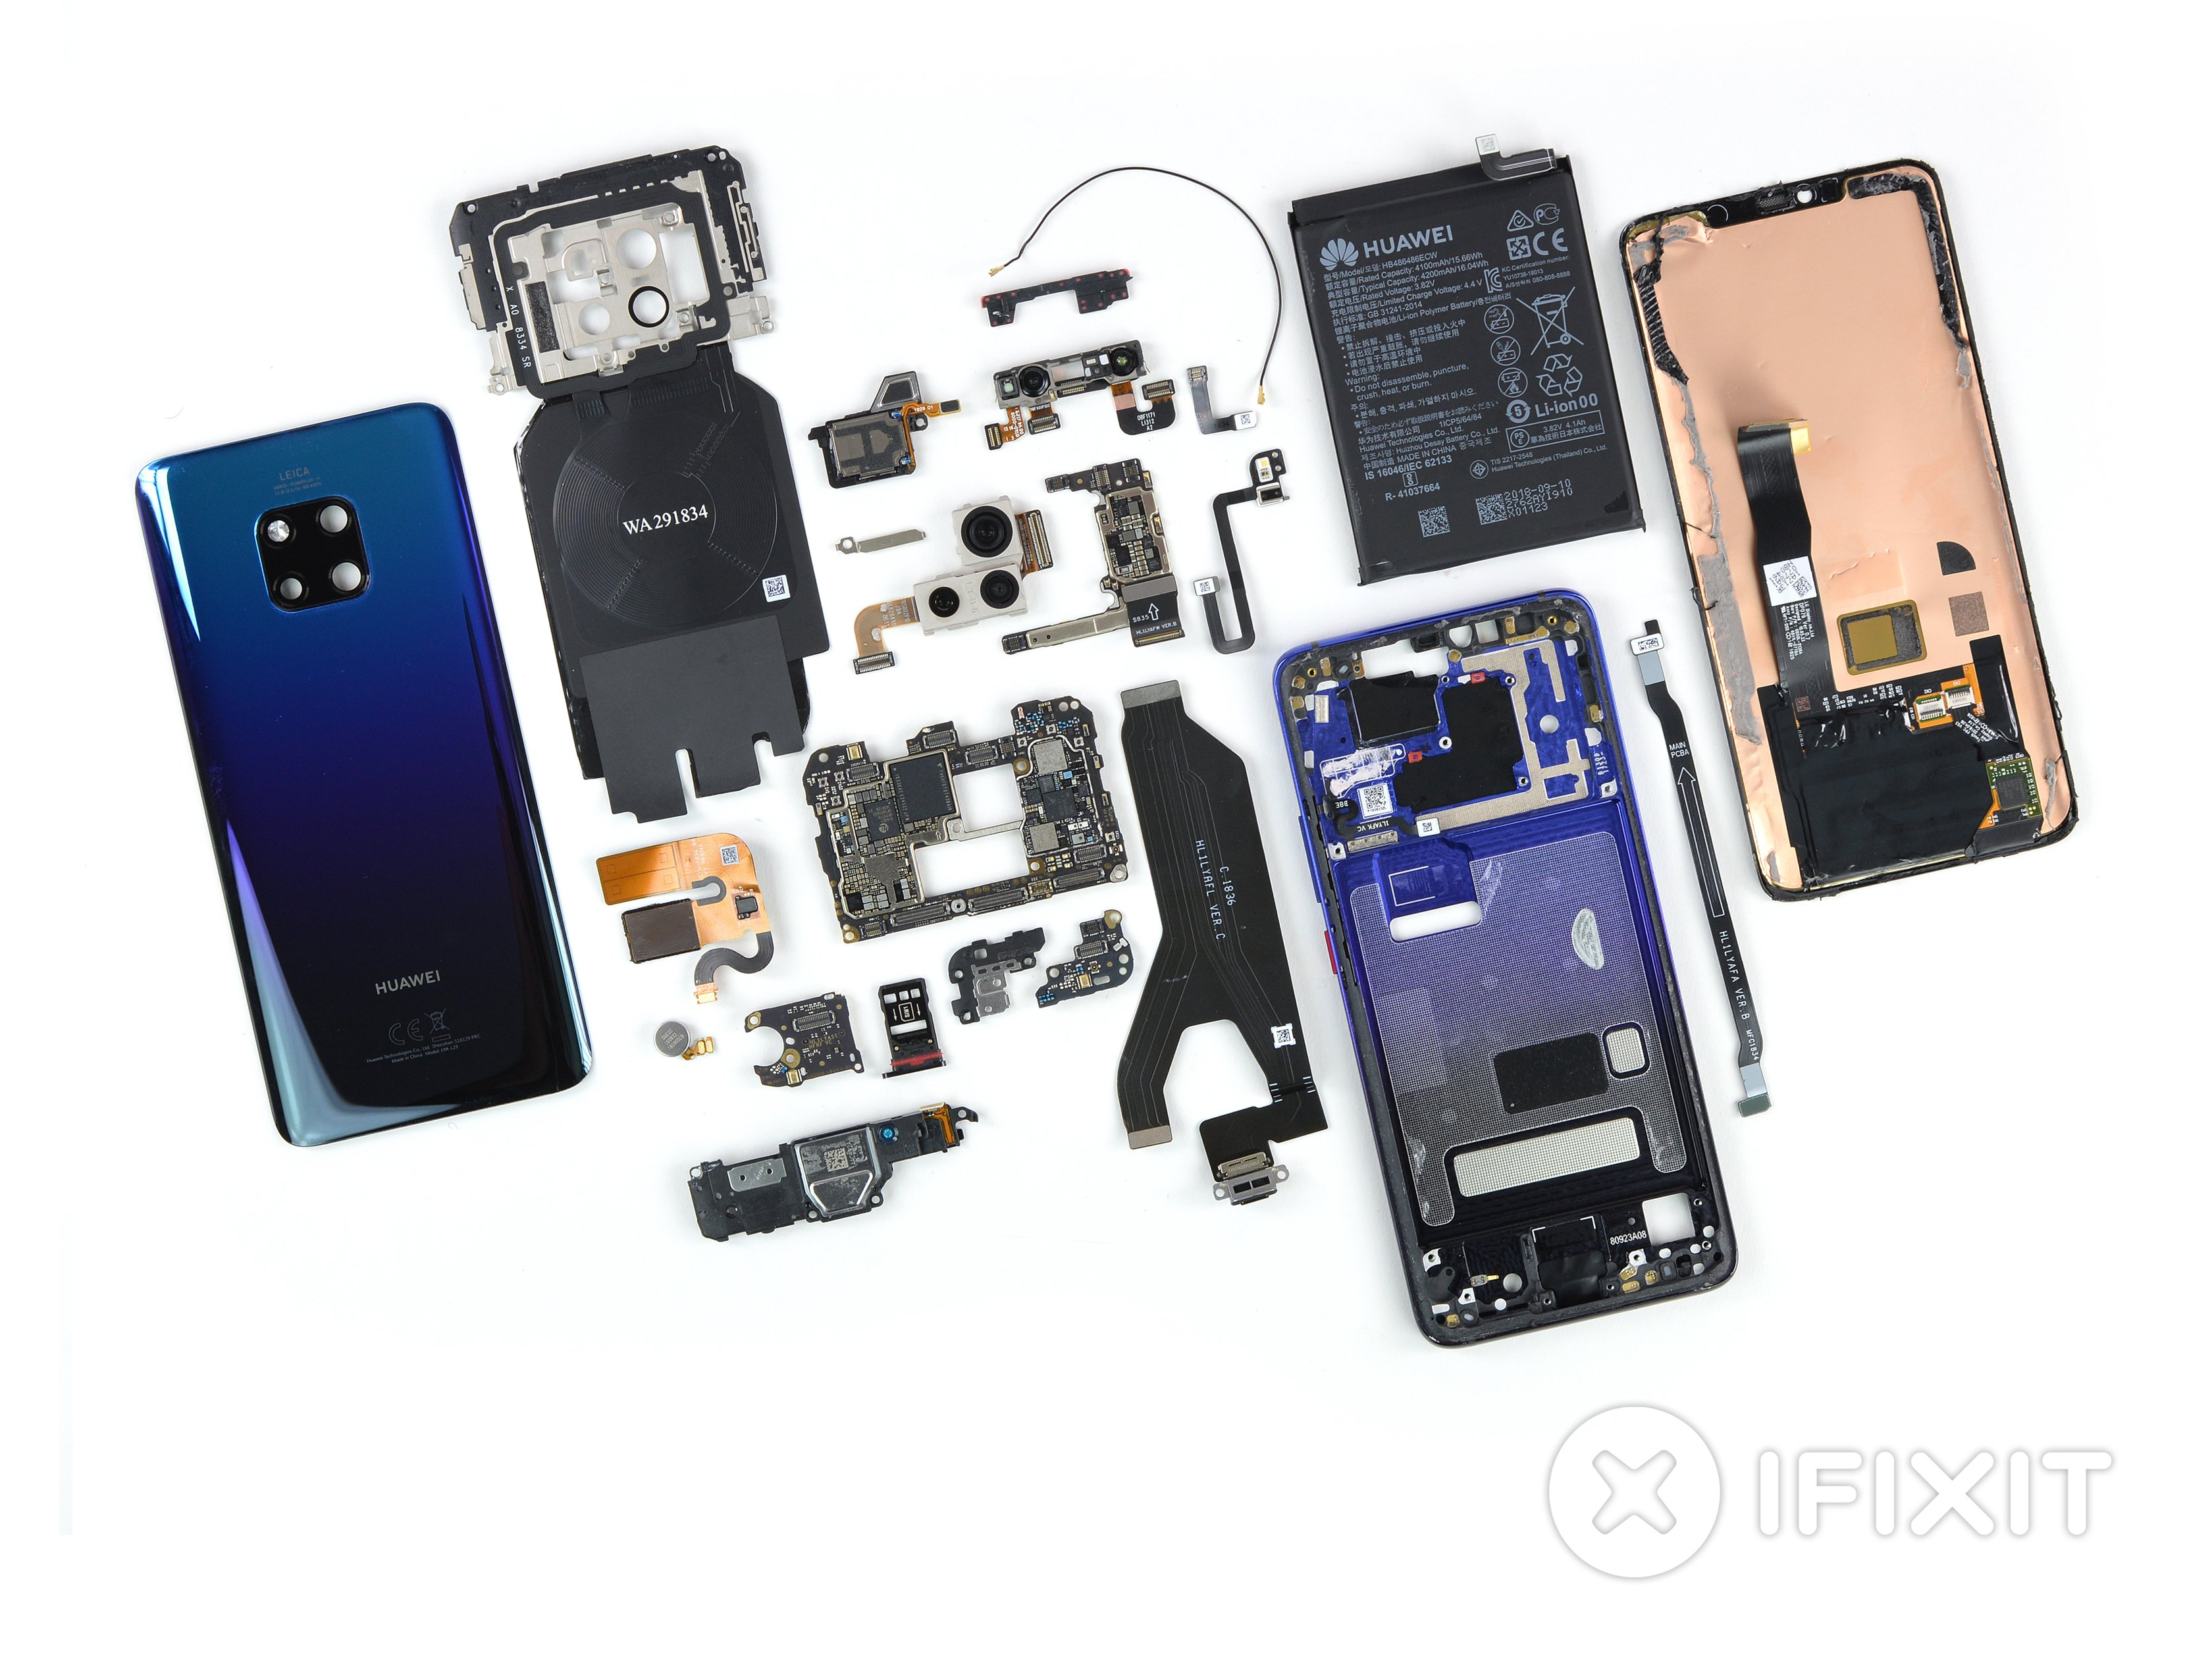 huawei mate 20 pro teardown ifixit. Black Bedroom Furniture Sets. Home Design Ideas